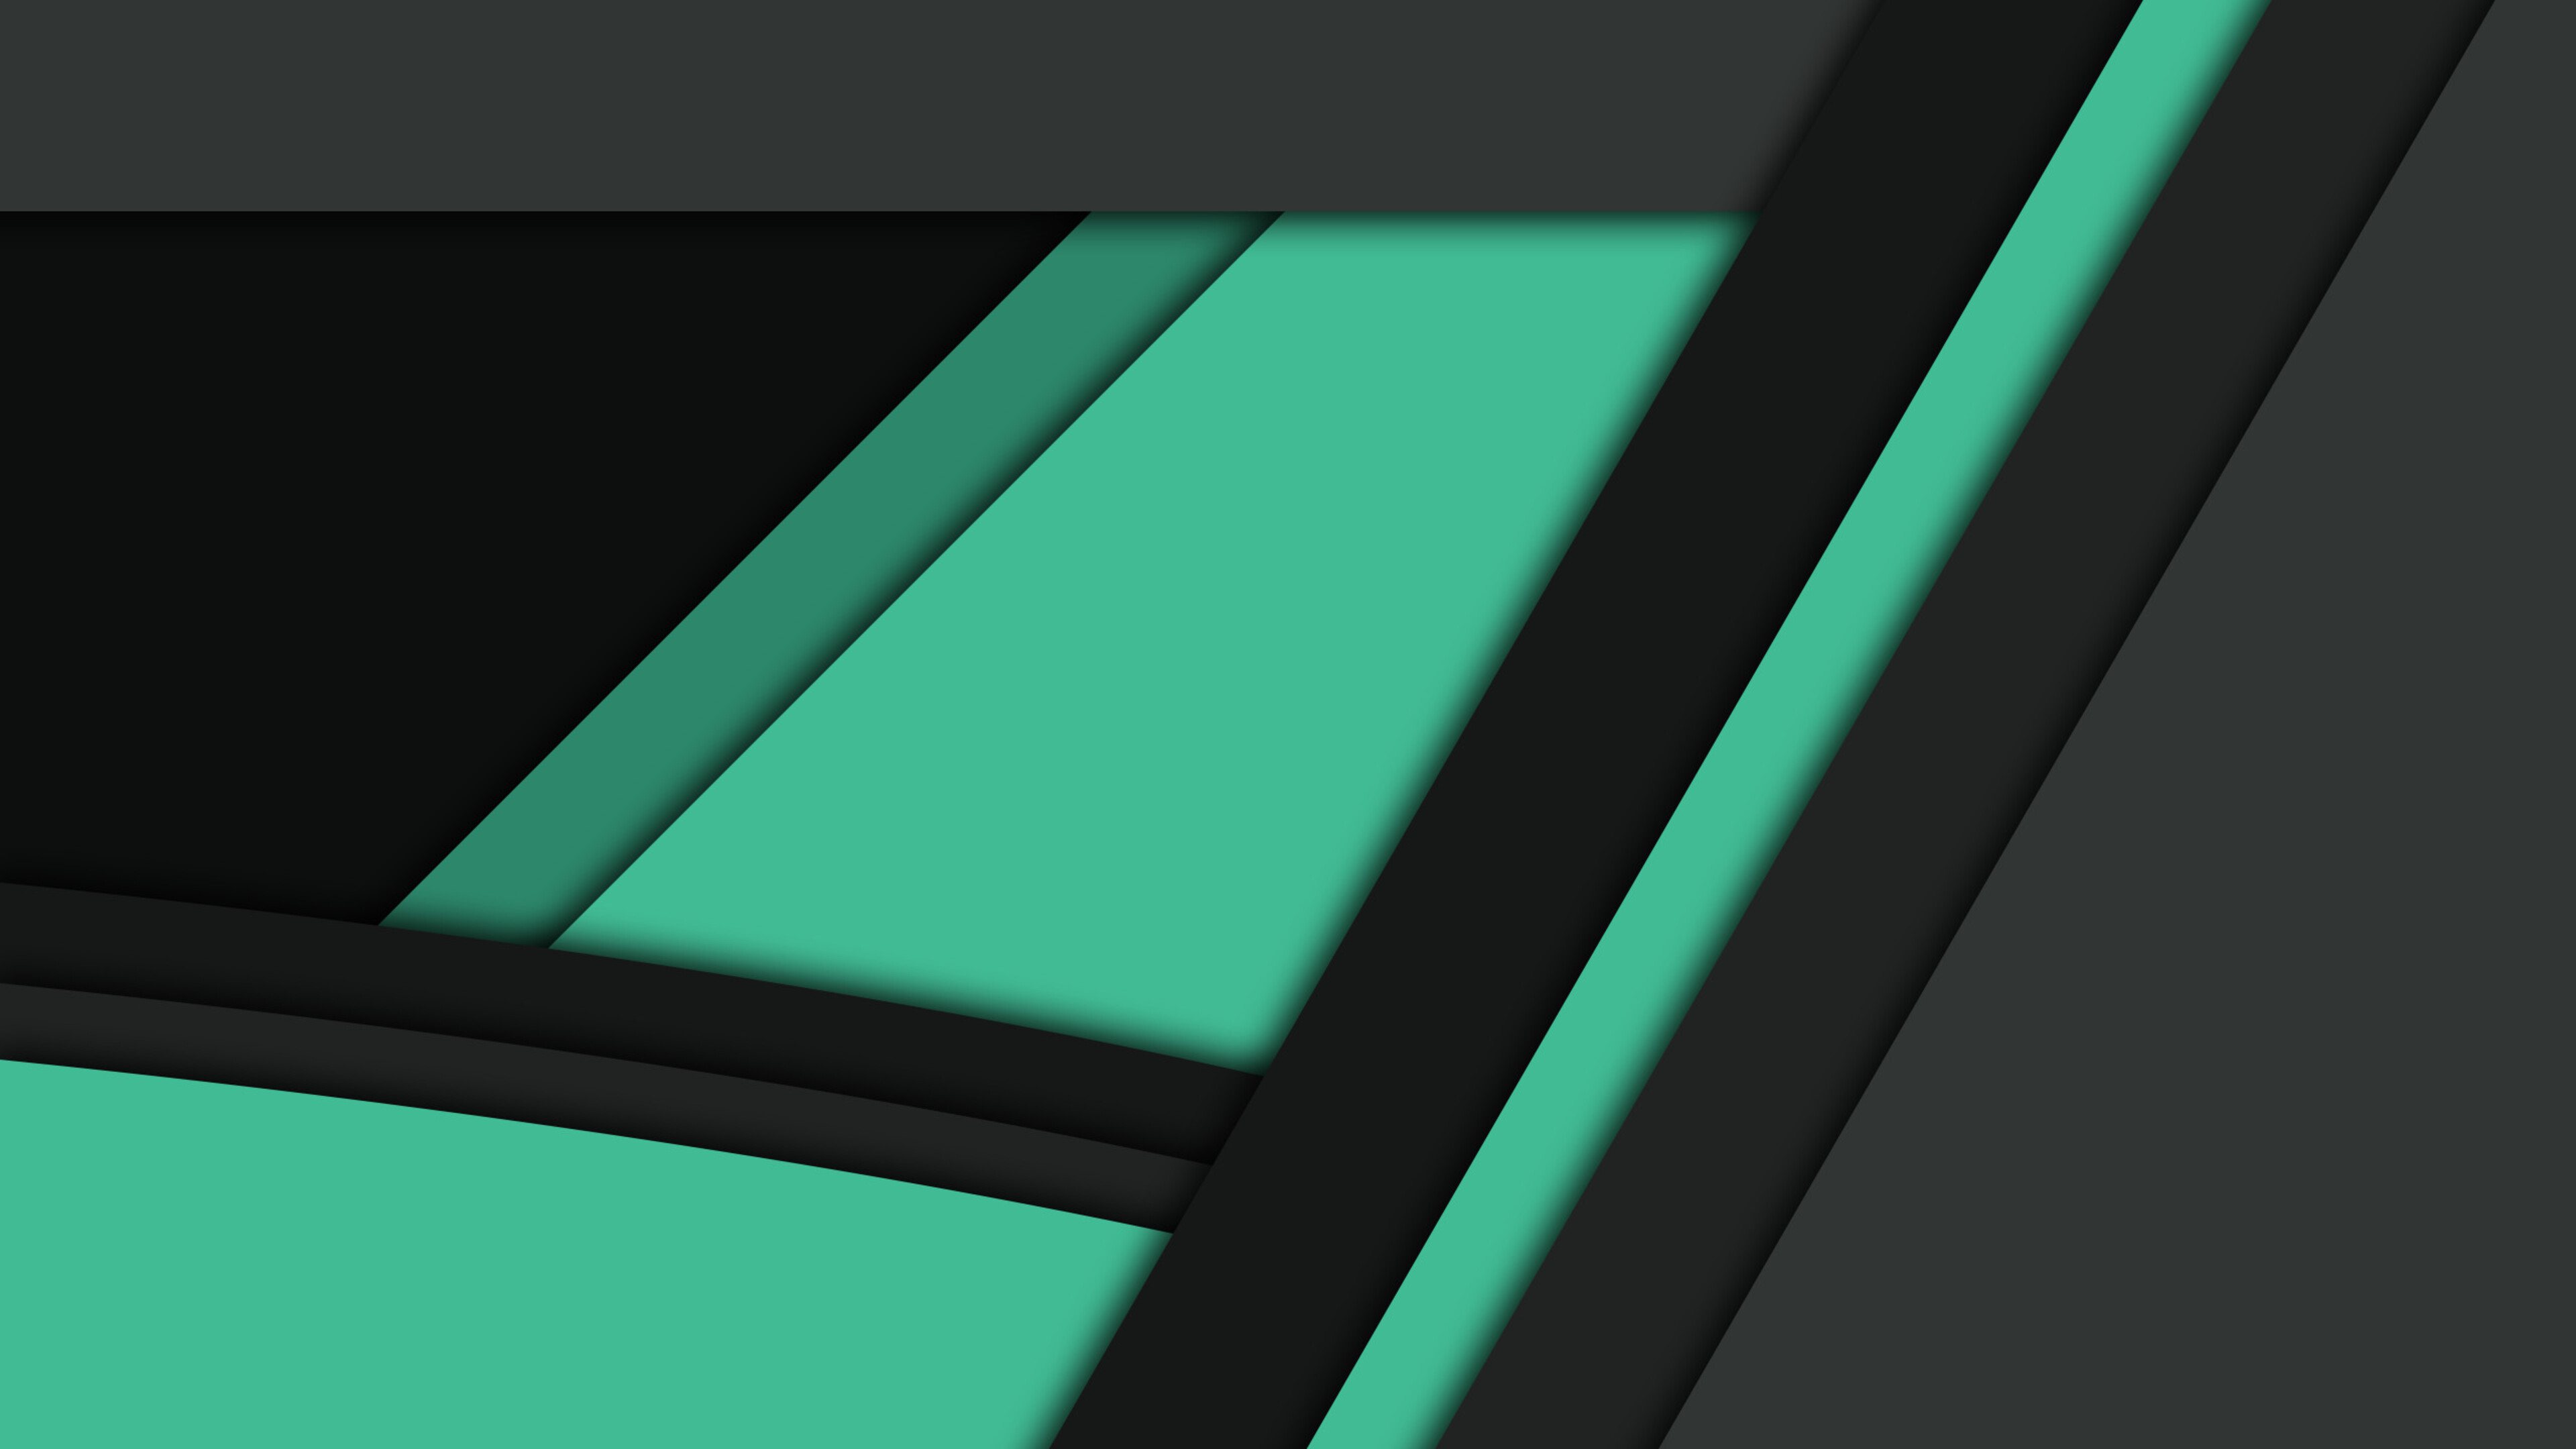 3840x2160 Black Green Material Design 4k HD 4k Wallpapers ...